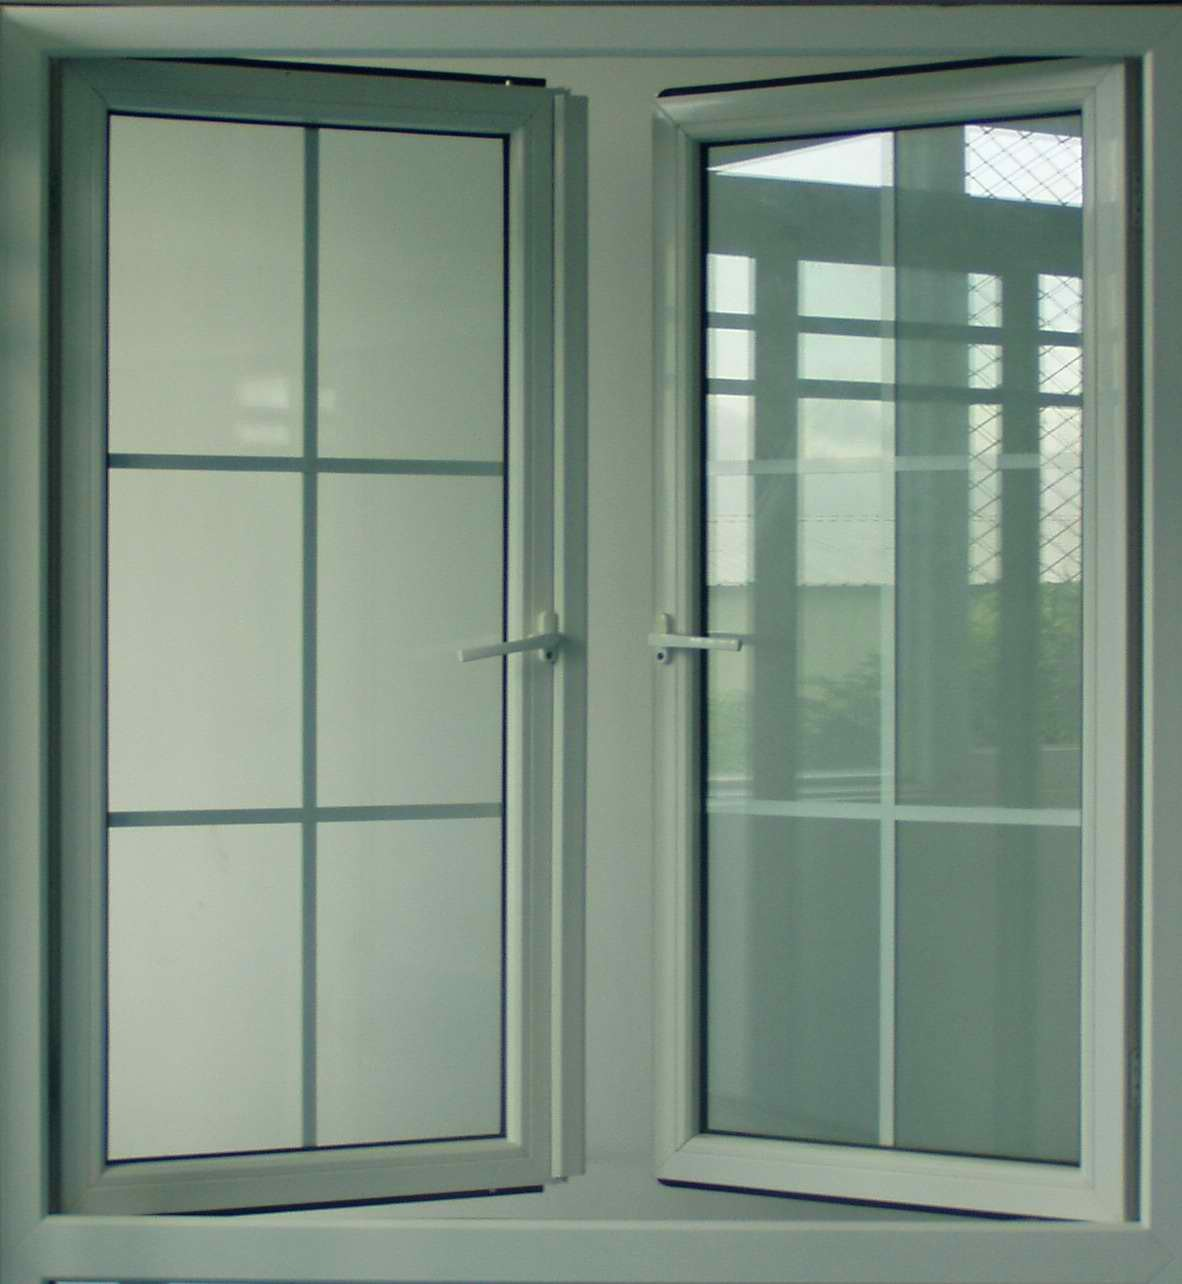 China aluminum swing in casement windows p1060001 for Metal windows